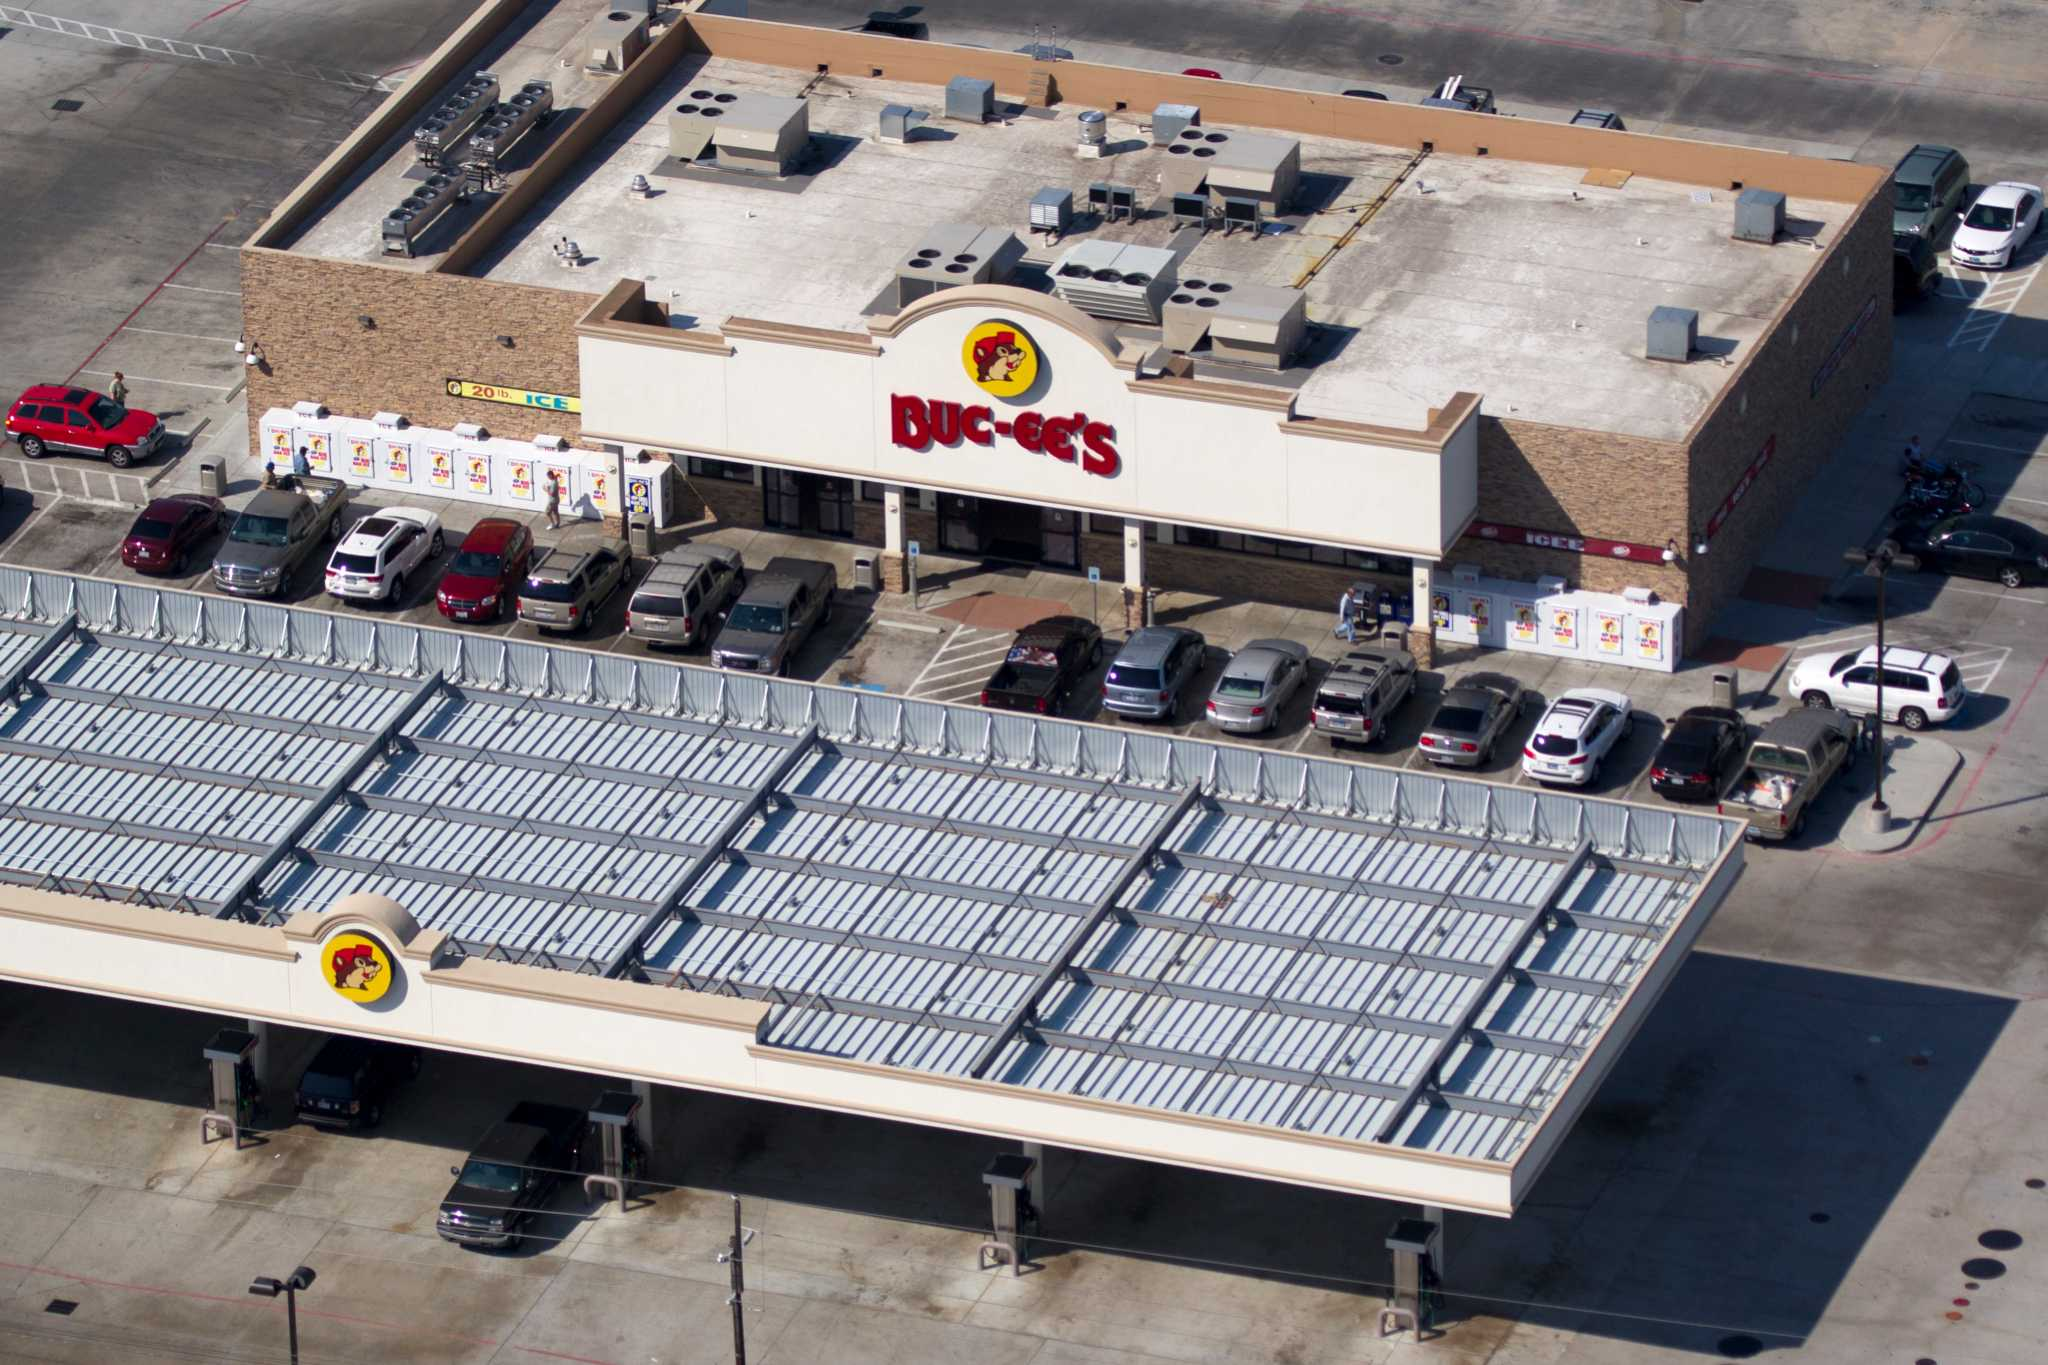 Buc ee s gnaws itself a notch on Texas  tourism belt   Houston Chronicle. Buc ee s gnaws itself a notch on Texas  tourism belt   Houston